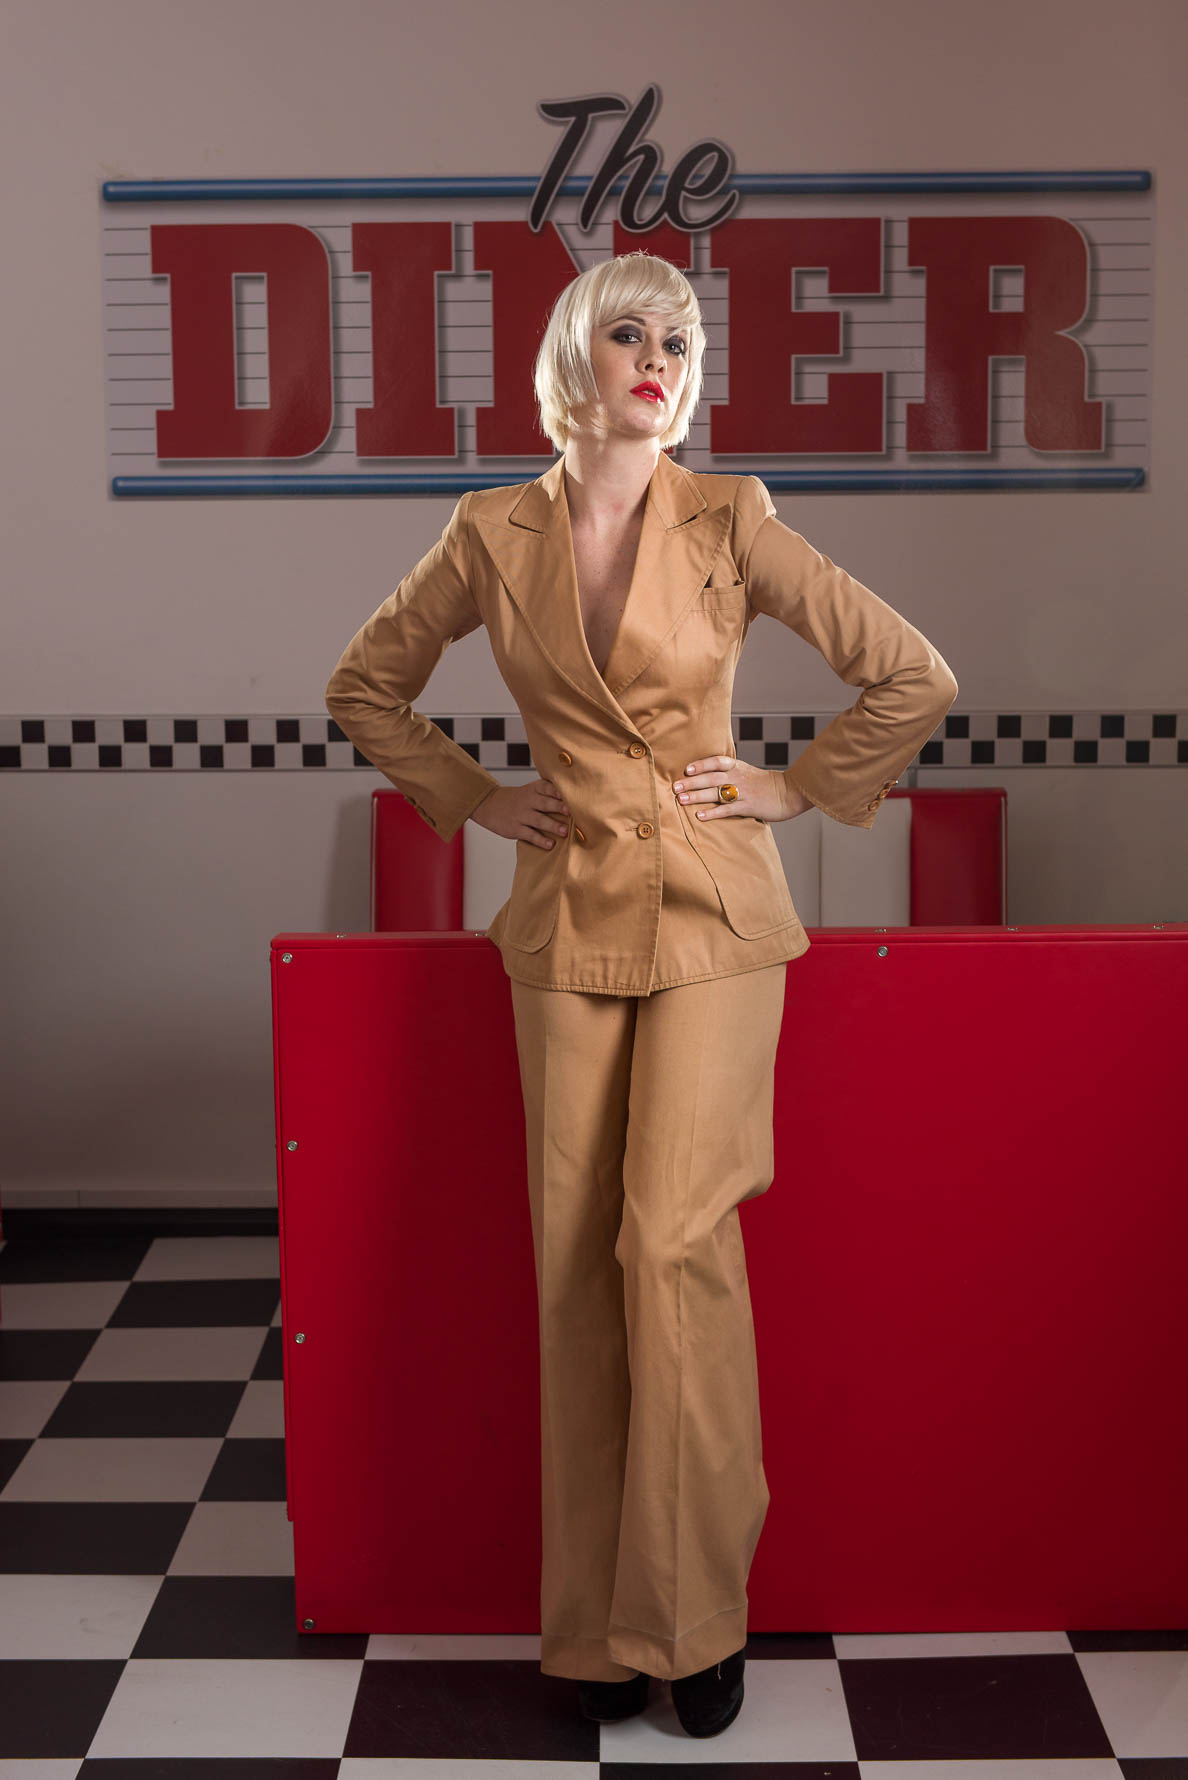 Fashion Photography - Pretty model in Diner